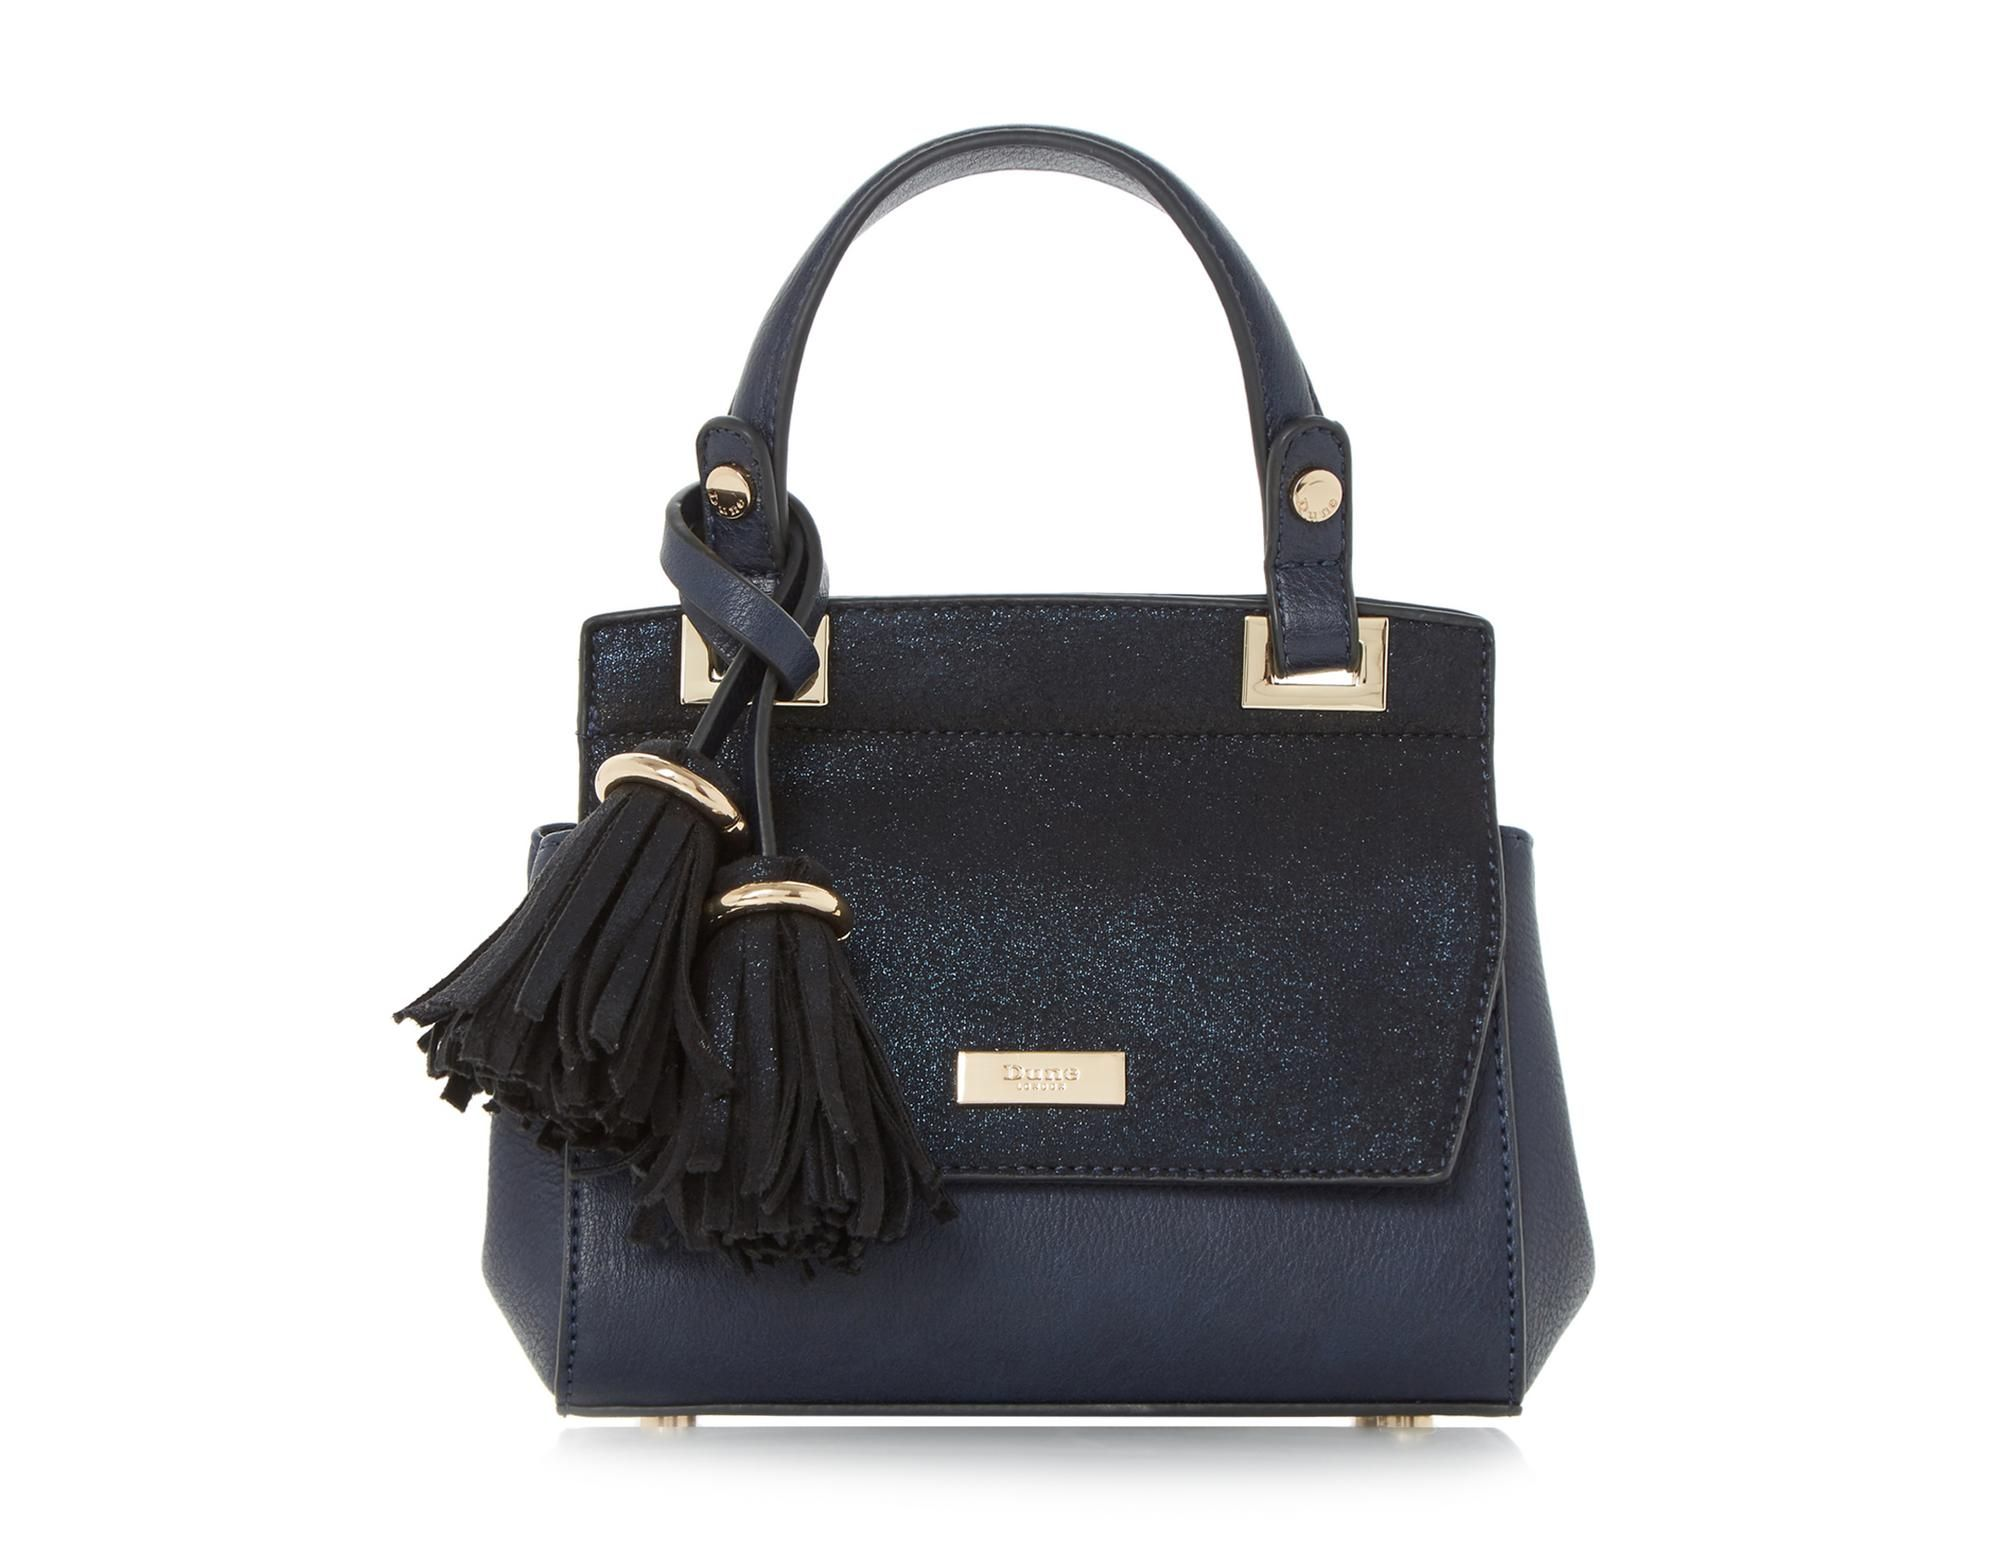 Go big on style and mini in size with this coveted micro bag. Featuring a flap over front with Dune branded hardware and top handle. Complete with an optional shoulder strap and oversized tassels.